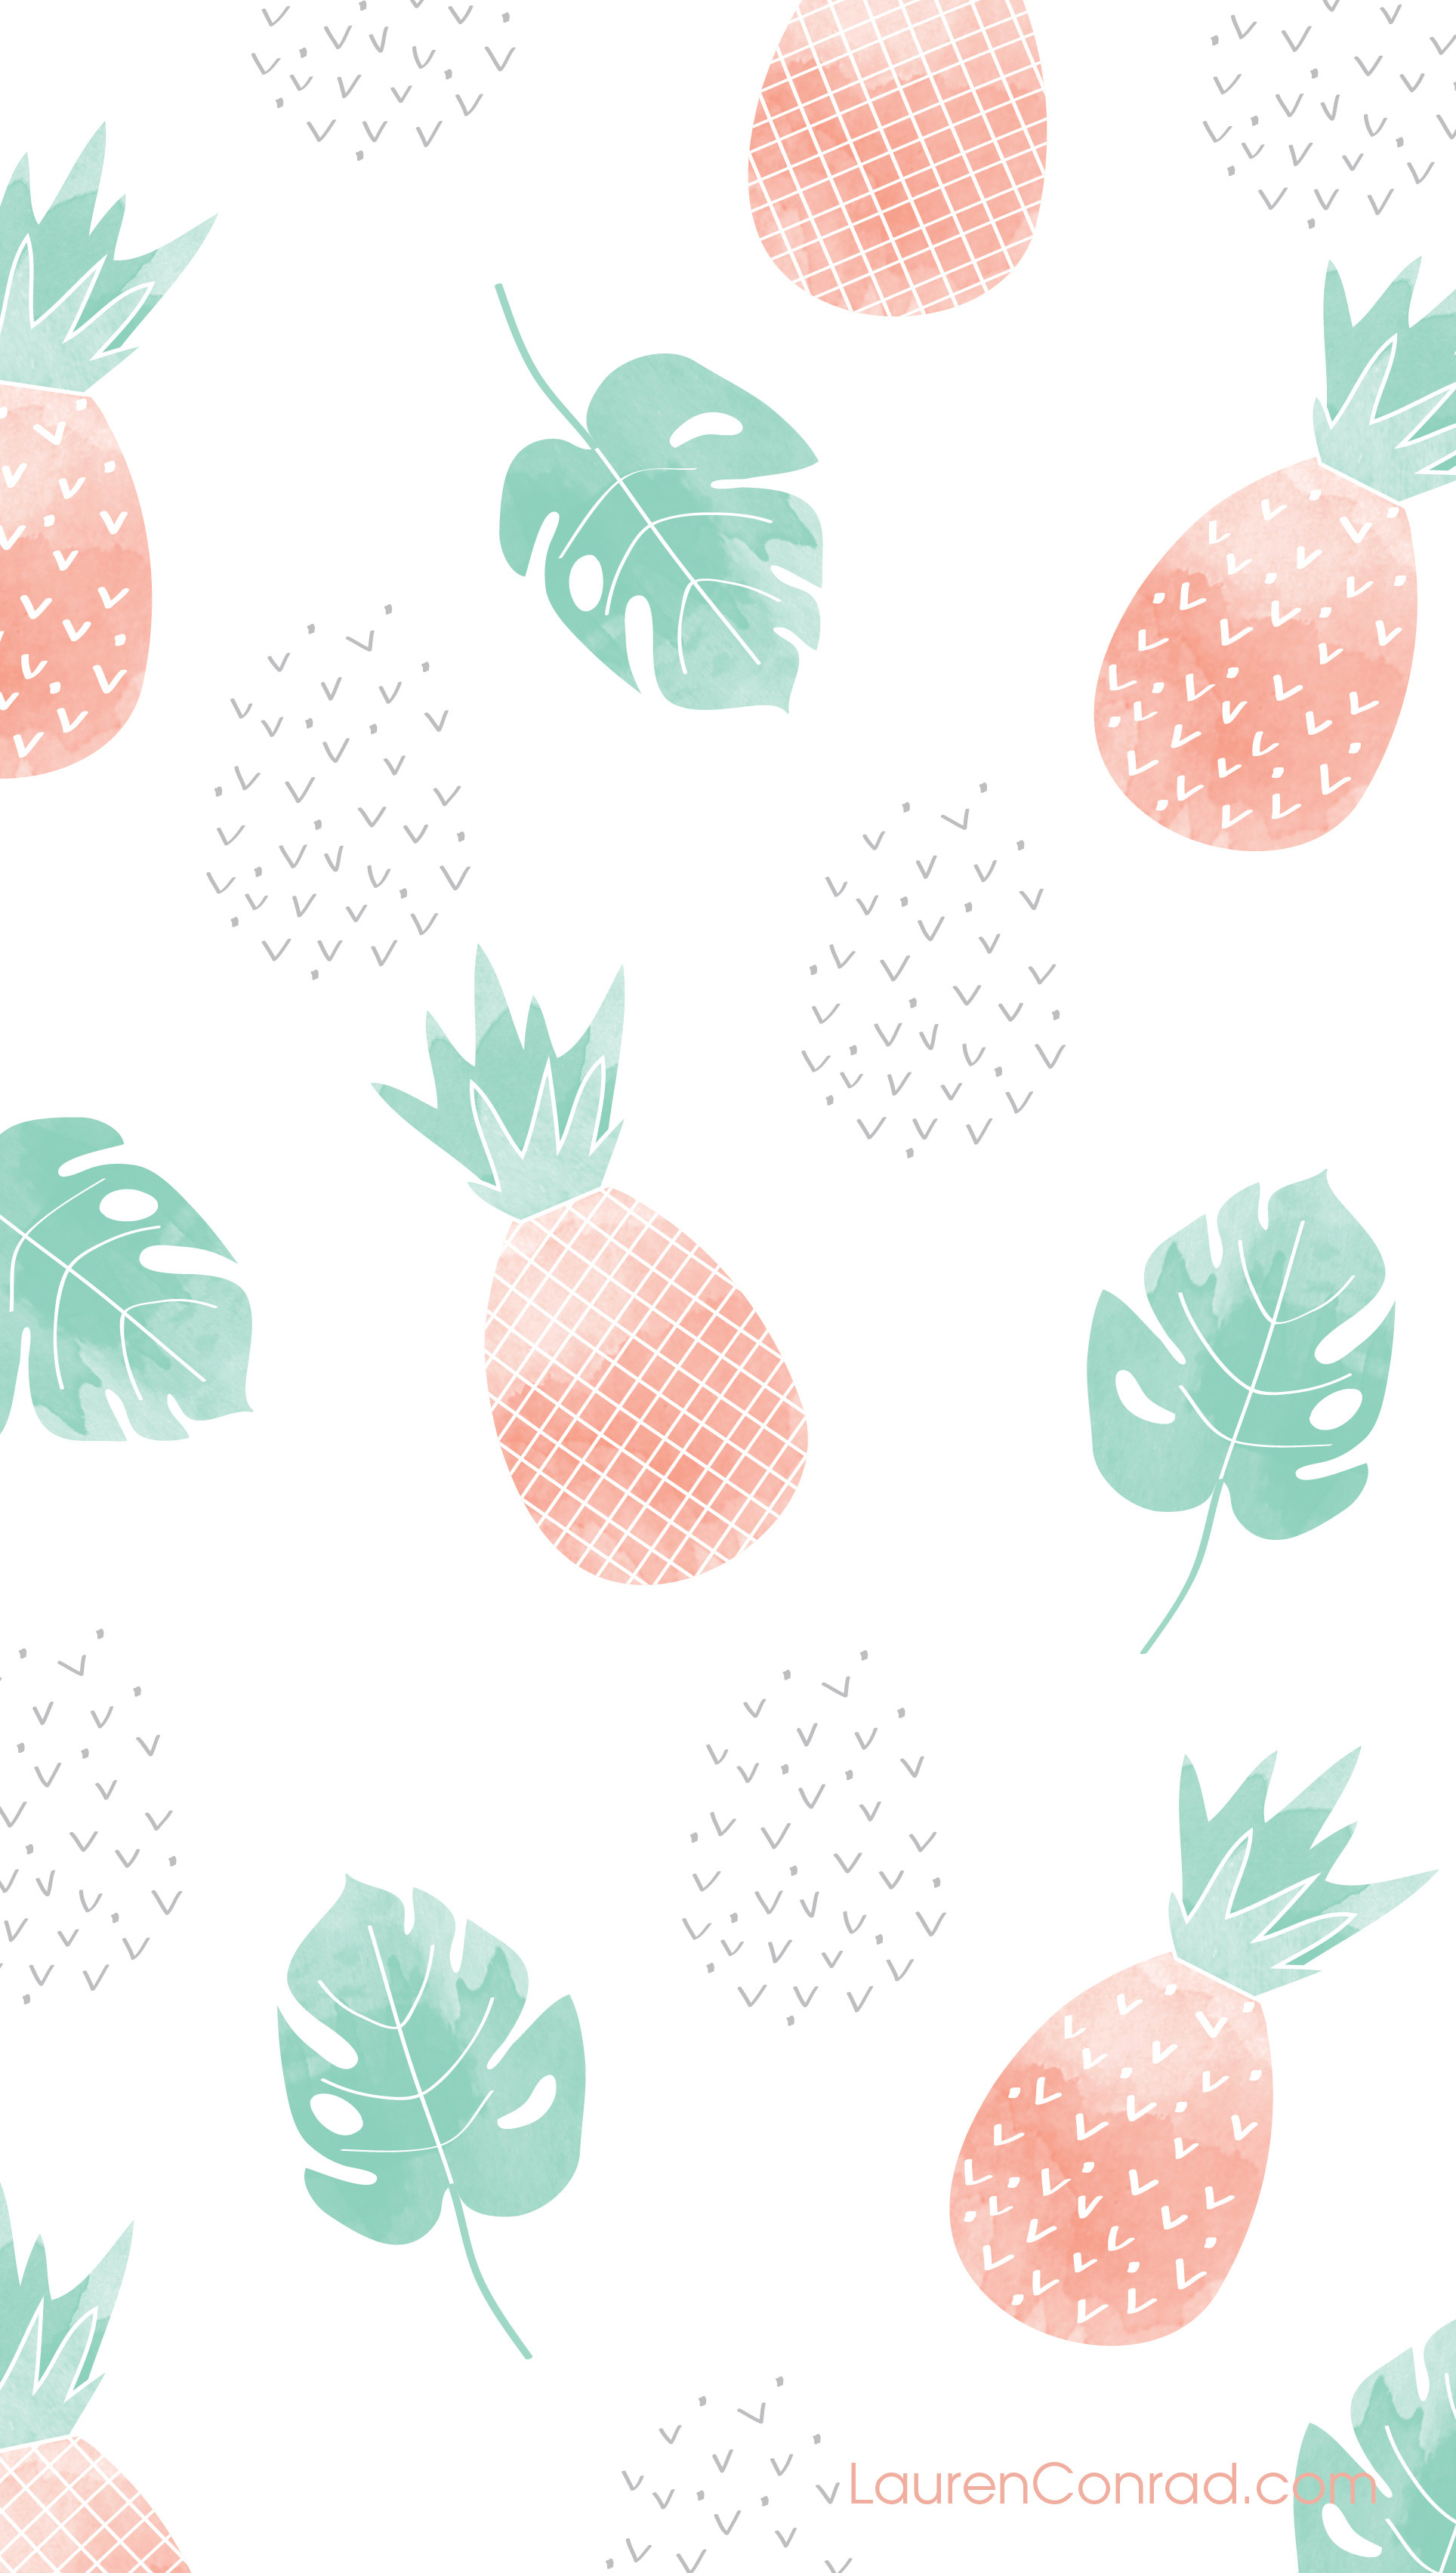 Yellow-Heart-Art-for-LC-Pineapple-Phone-Wallpaper-DOWNLOAD.jpg 1,928×3,407  pixeles | Fotography | Pinterest | Wallpaper, Patterns and Prints